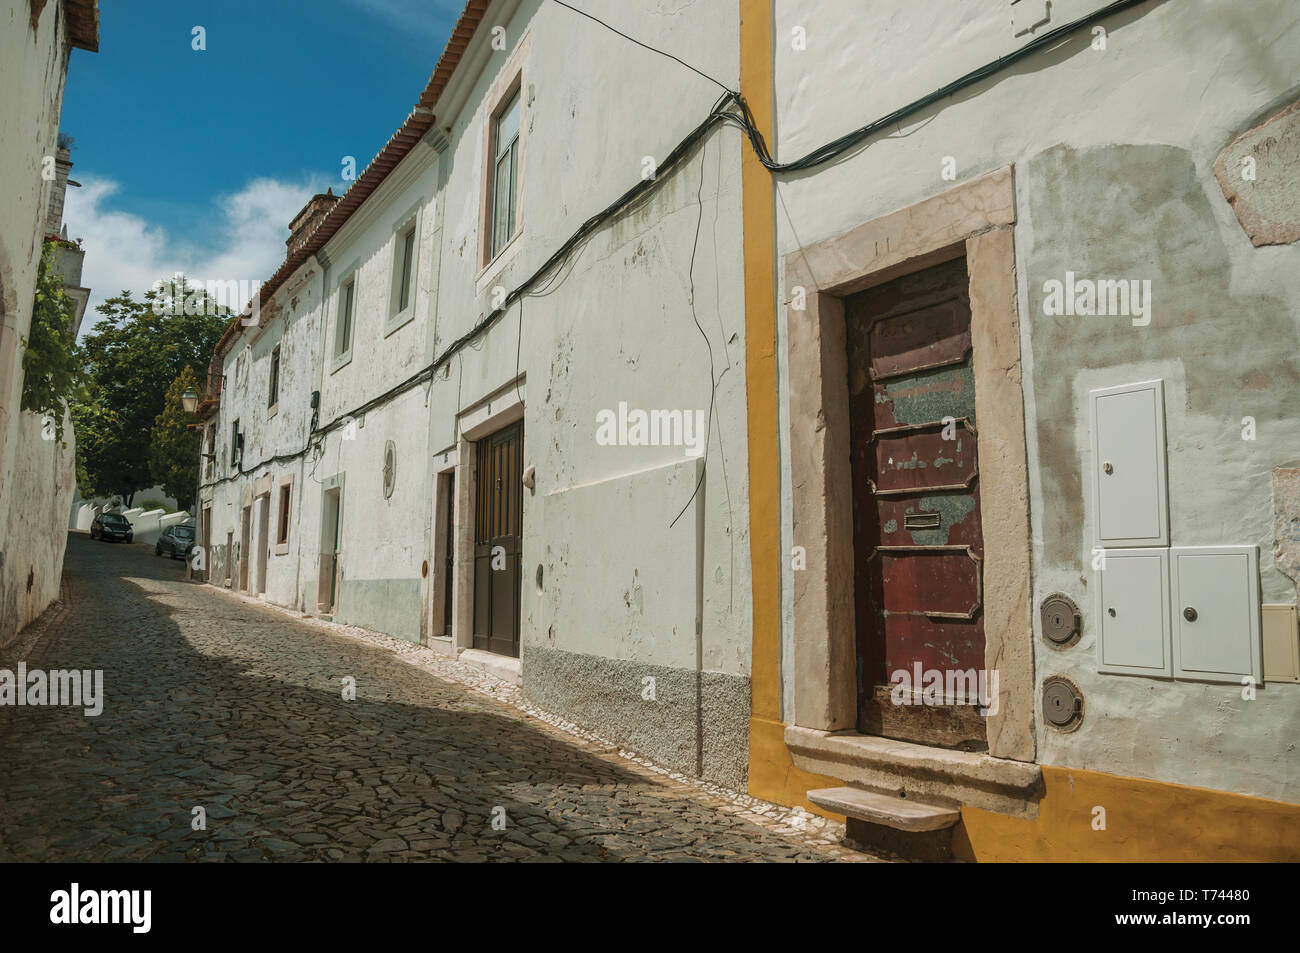 Old Houses With Doors On Alley With Cobblestone Pavement In Sunny